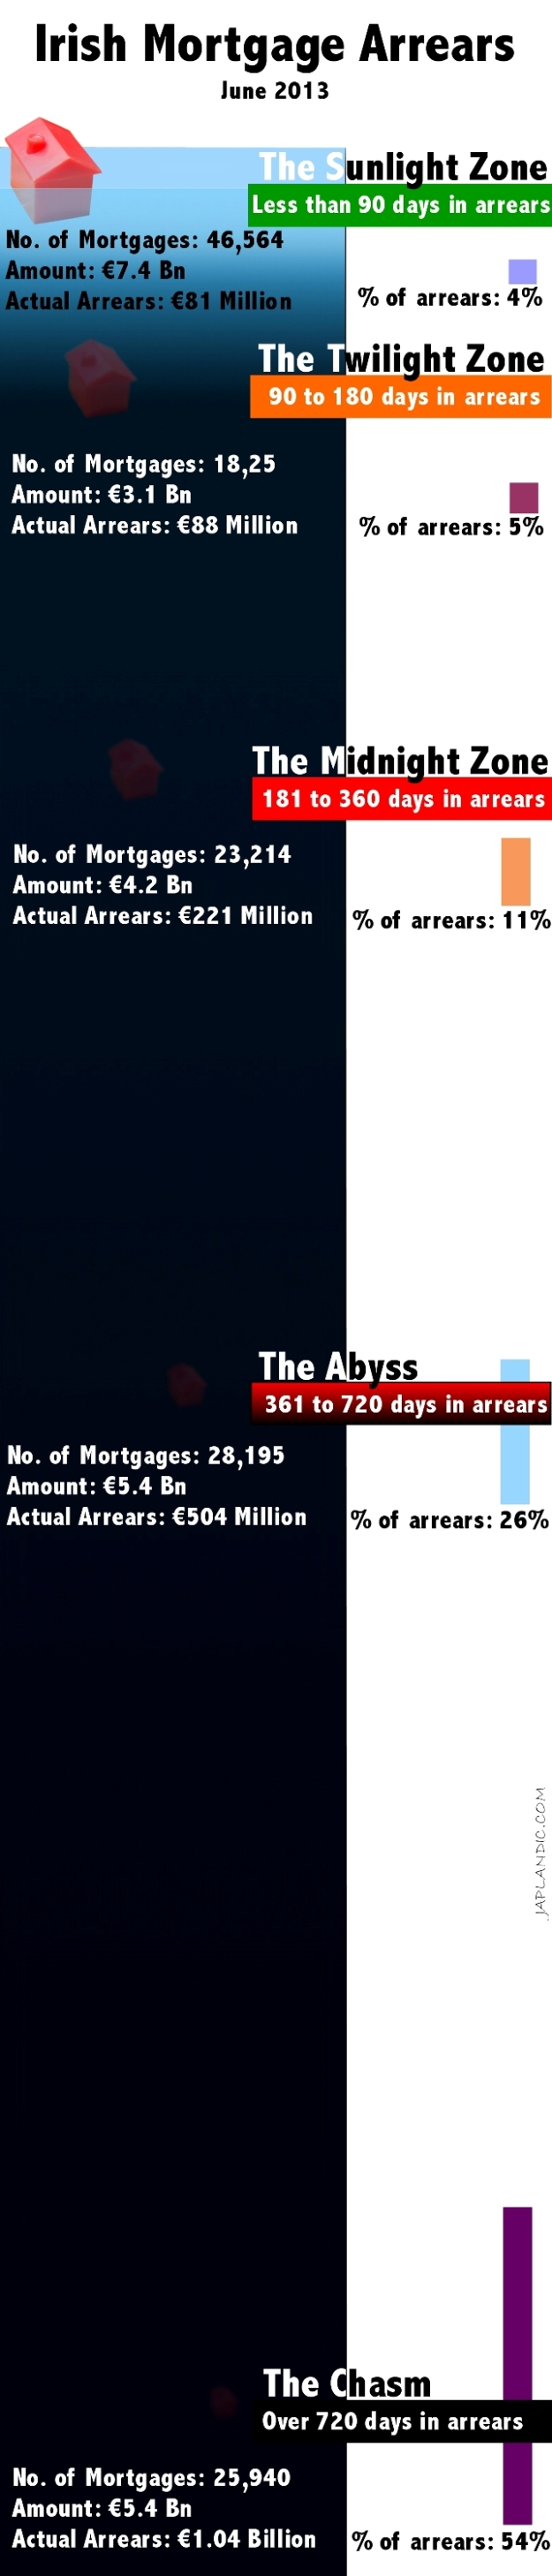 Irish Mortgage Arrears in an Infographic